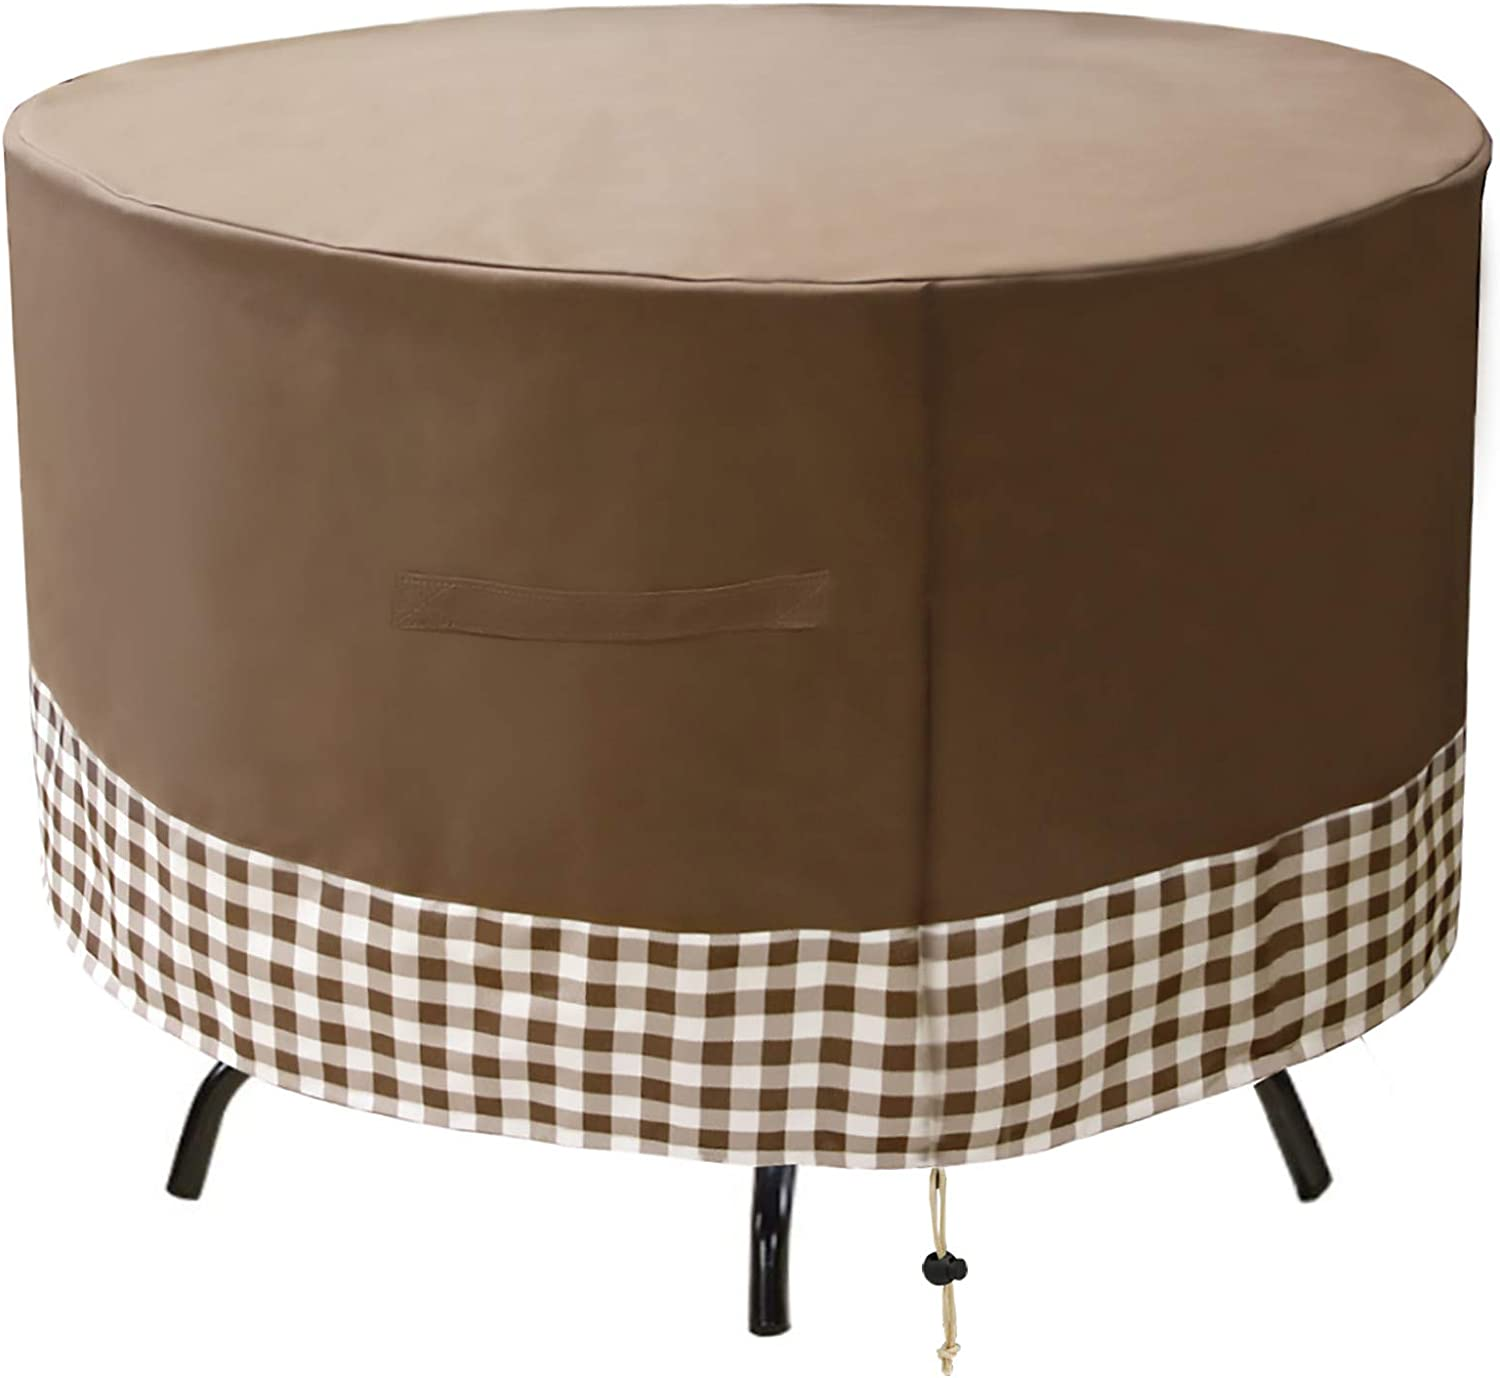 Cheap SALE Start JLDUP Patio Table Cover 2021 new 36 Furniture Inch Wat Round